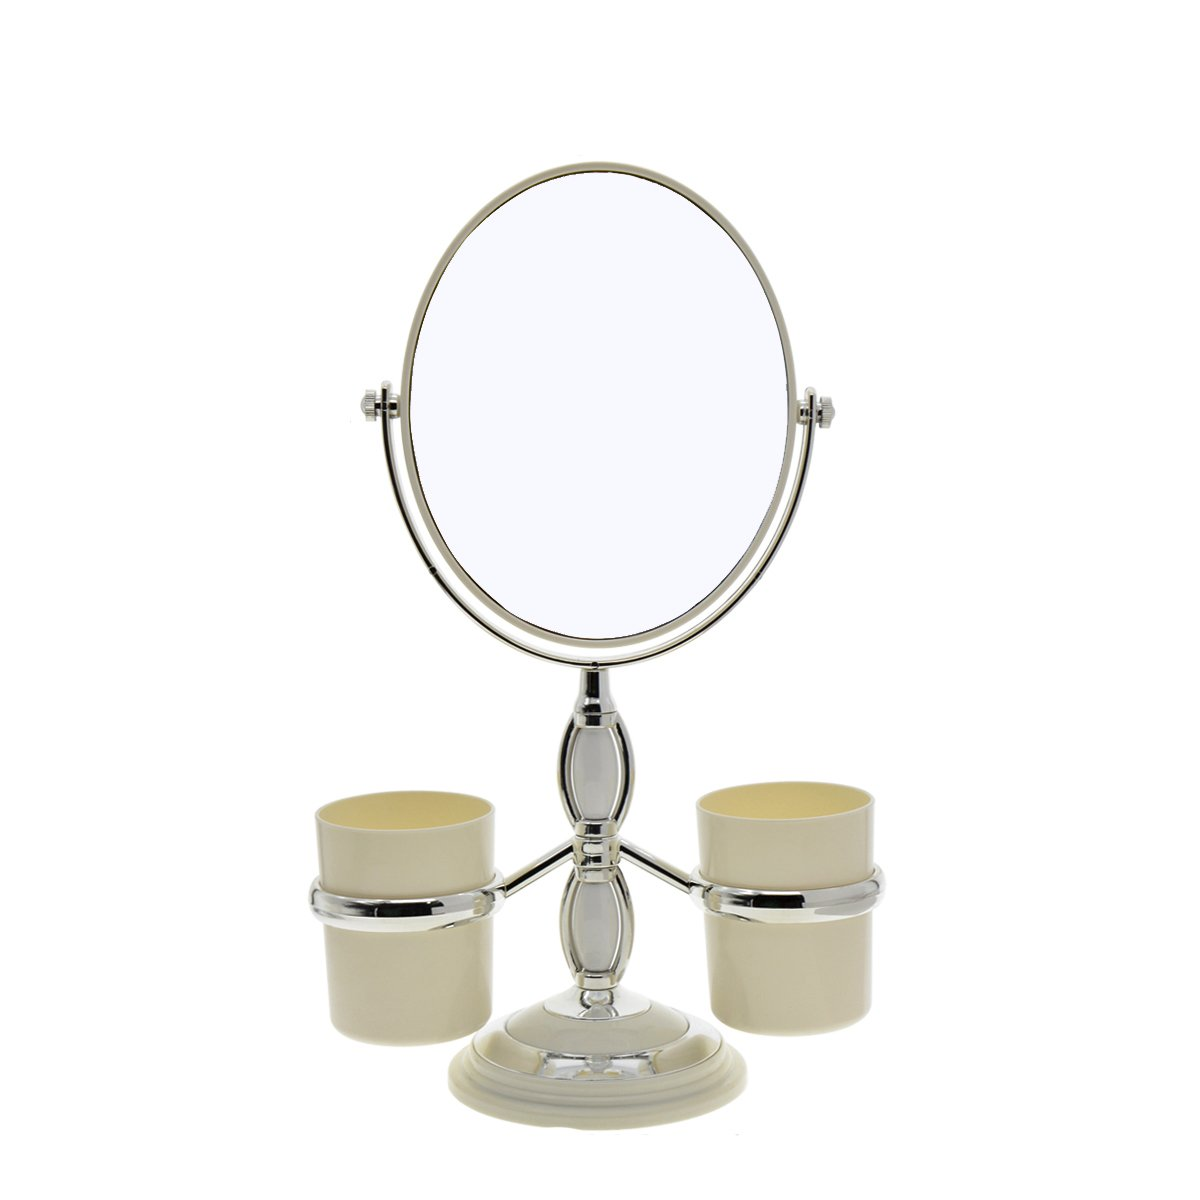 Saim Oval Shaped Double Sided Makeup Mirror, 1X/2X Magnifying Cosmetic Mirror with Two Brush Holders for Women Girls - White